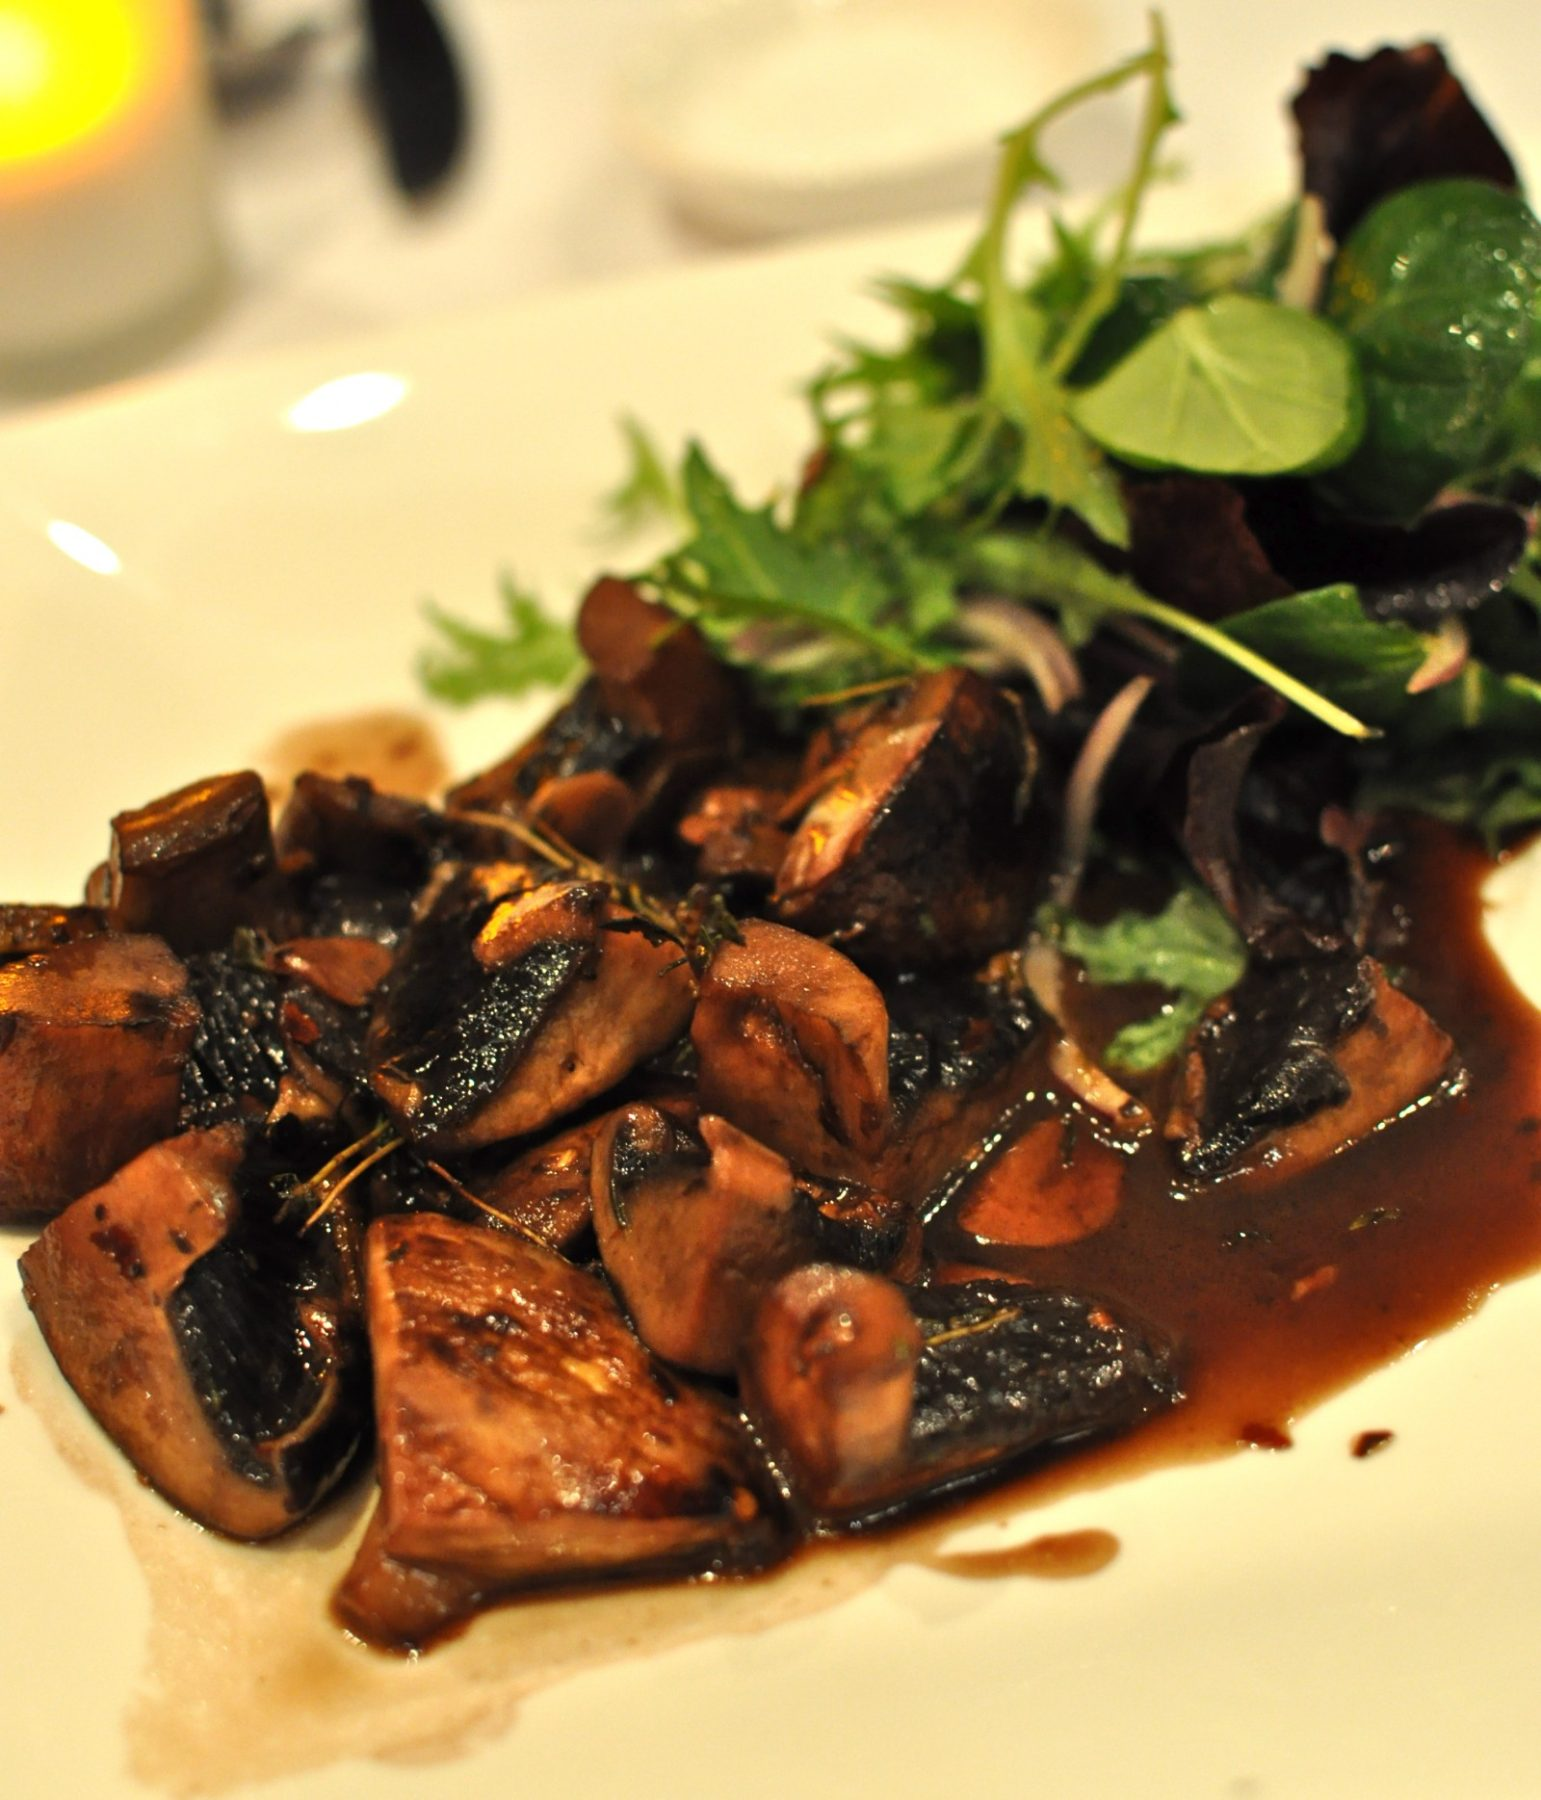 Sauteed mushrooms $22.90